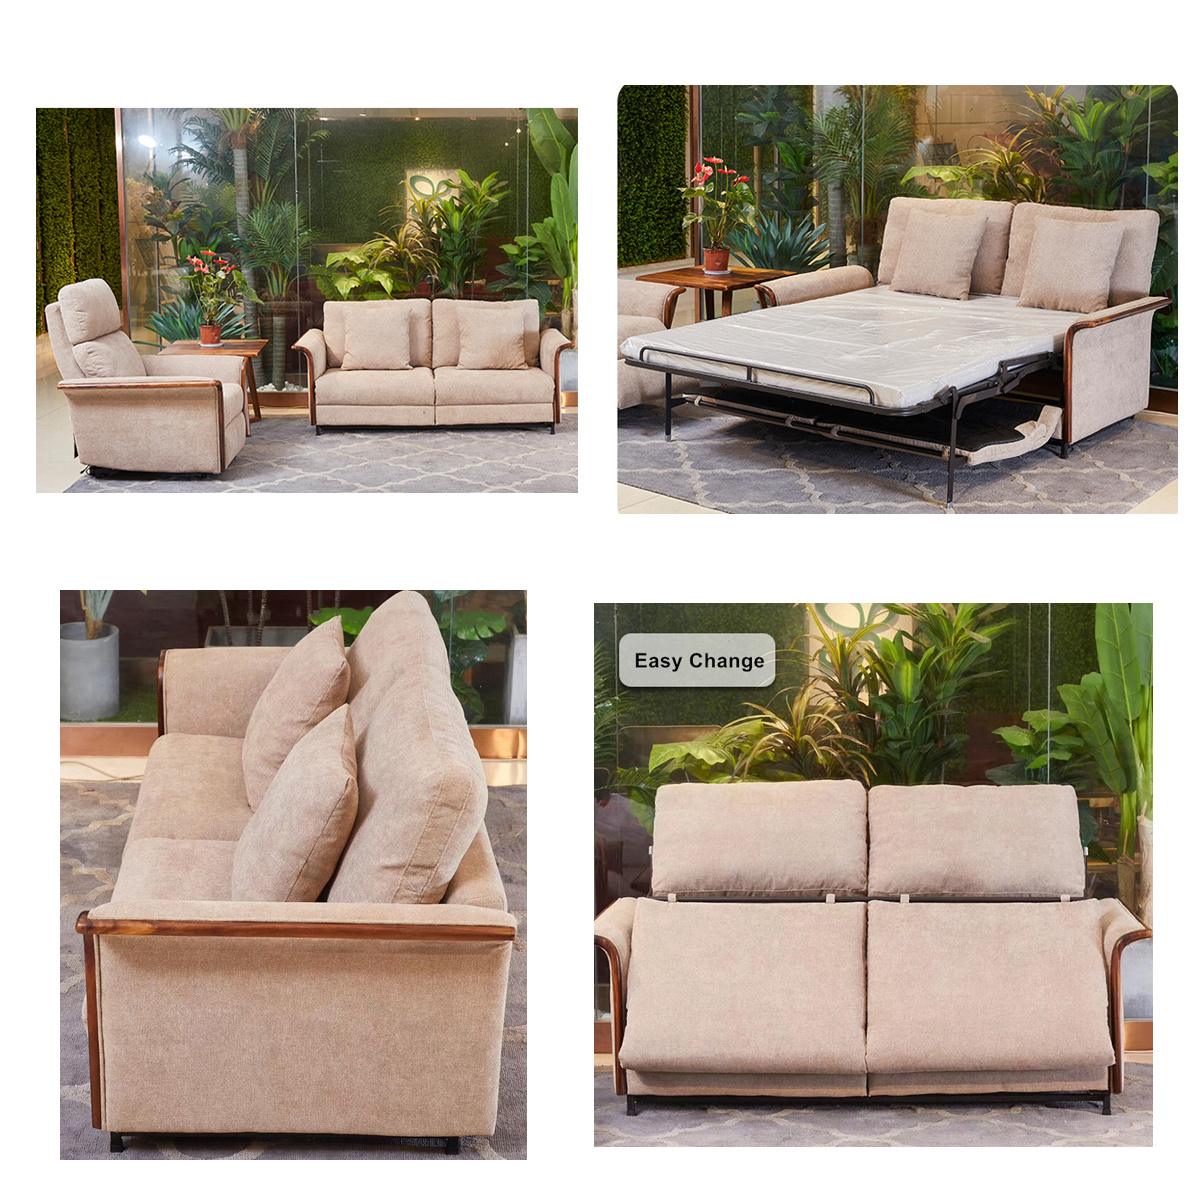 Home Multi-Function Lounge Chair Folding Seat